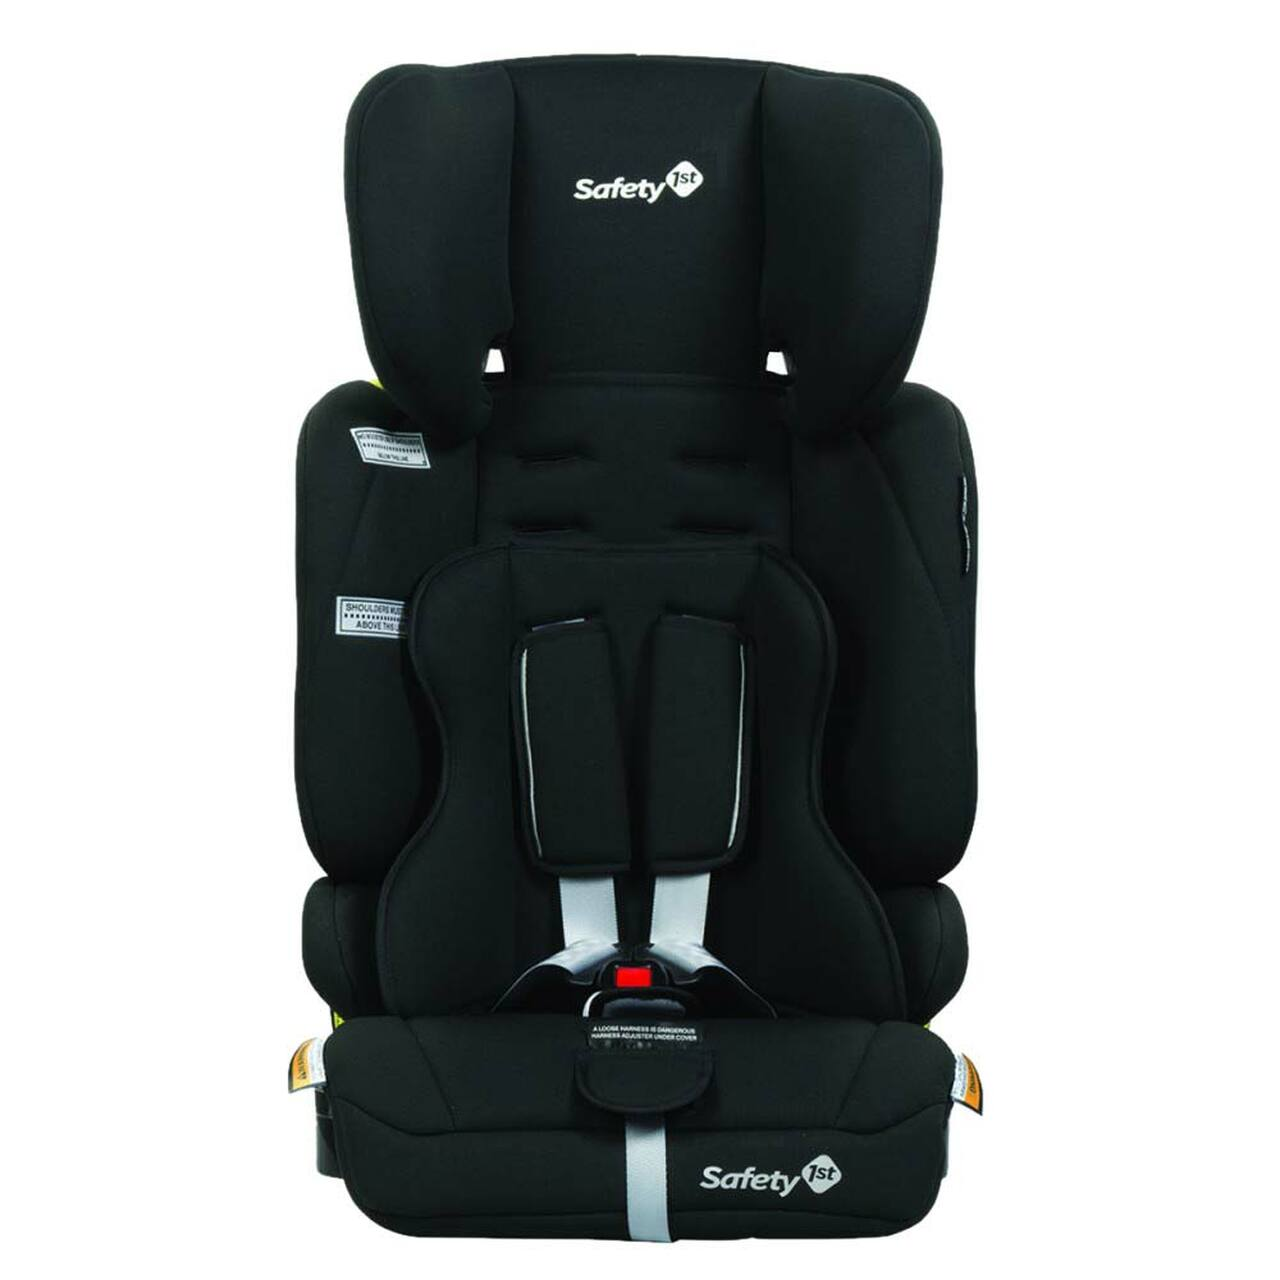 Safety 1st Convertible booster seat SOLO